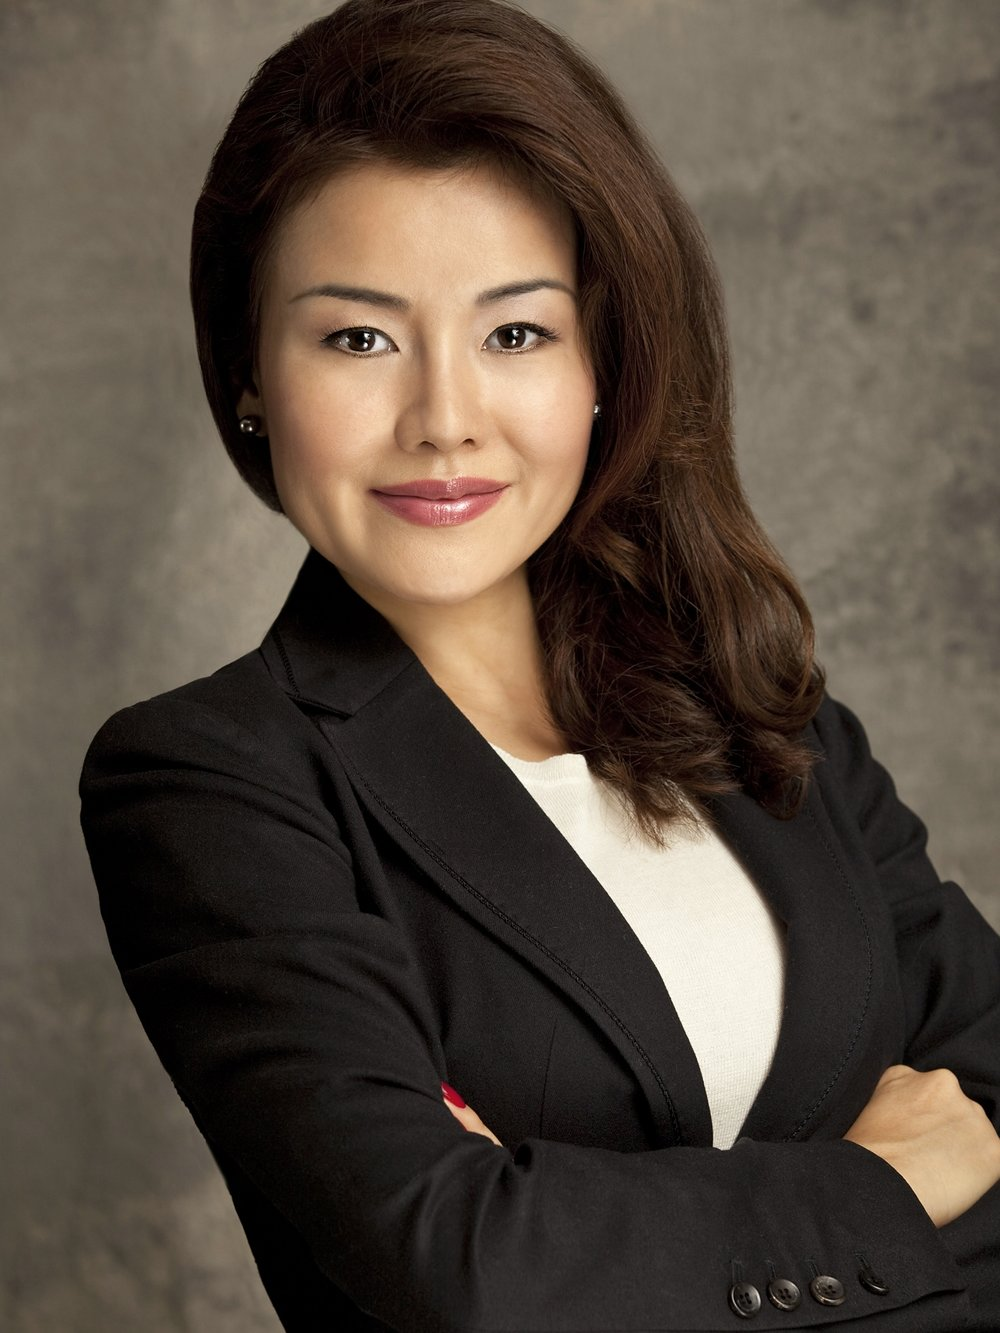 Julie Kang - Julie Kang serves as a Senior Managing Director of MHP Real Estate Services. During Ms. Kang's real estate career, she has represented local and international investors in commercial real estate transactions. Her in-depth knowledge of the New York real estate market and adaptability in serving diverse clientele and assignments are what sets Ms. Kang apart from the competition. Ms. Kang graduated from the University of Hawaii with a BA in Political Science. She is a Certified Commercial Investment Member (CCIM), and is a past president of Asian Real Estate Association of America (AREAA) Manhattan Chapter.